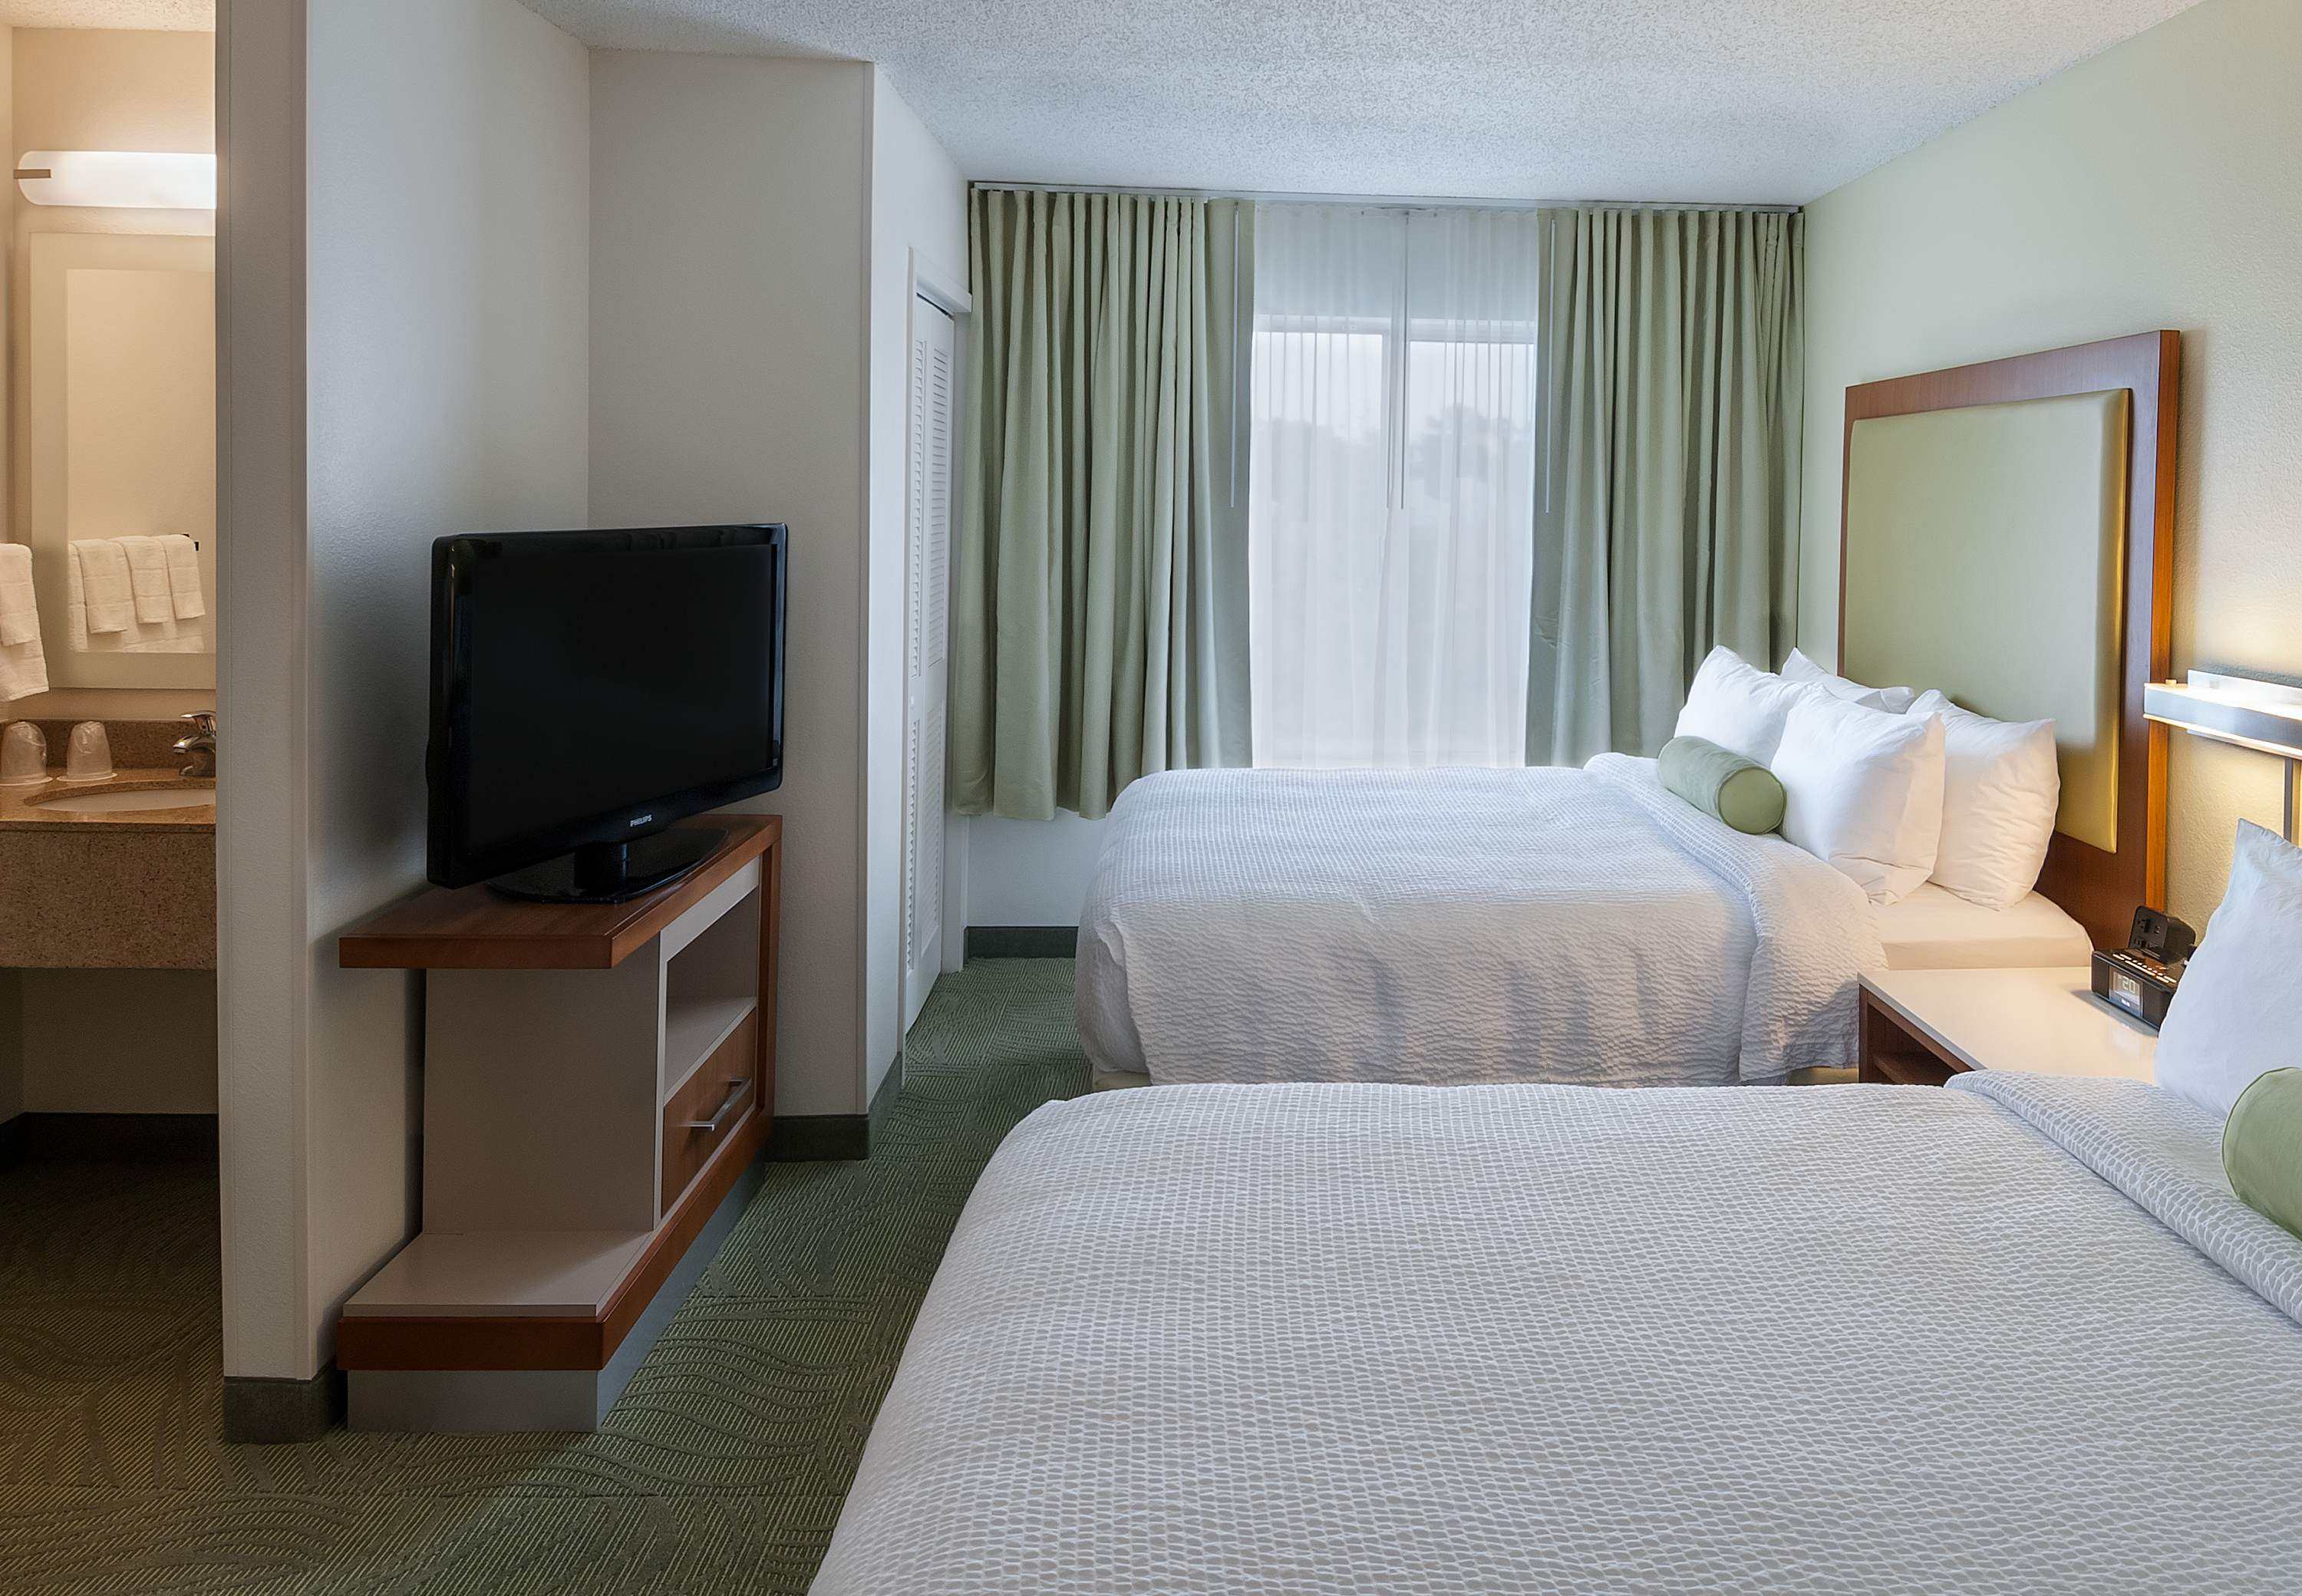 SpringHill Suites by Marriott Baton Rouge South image 2